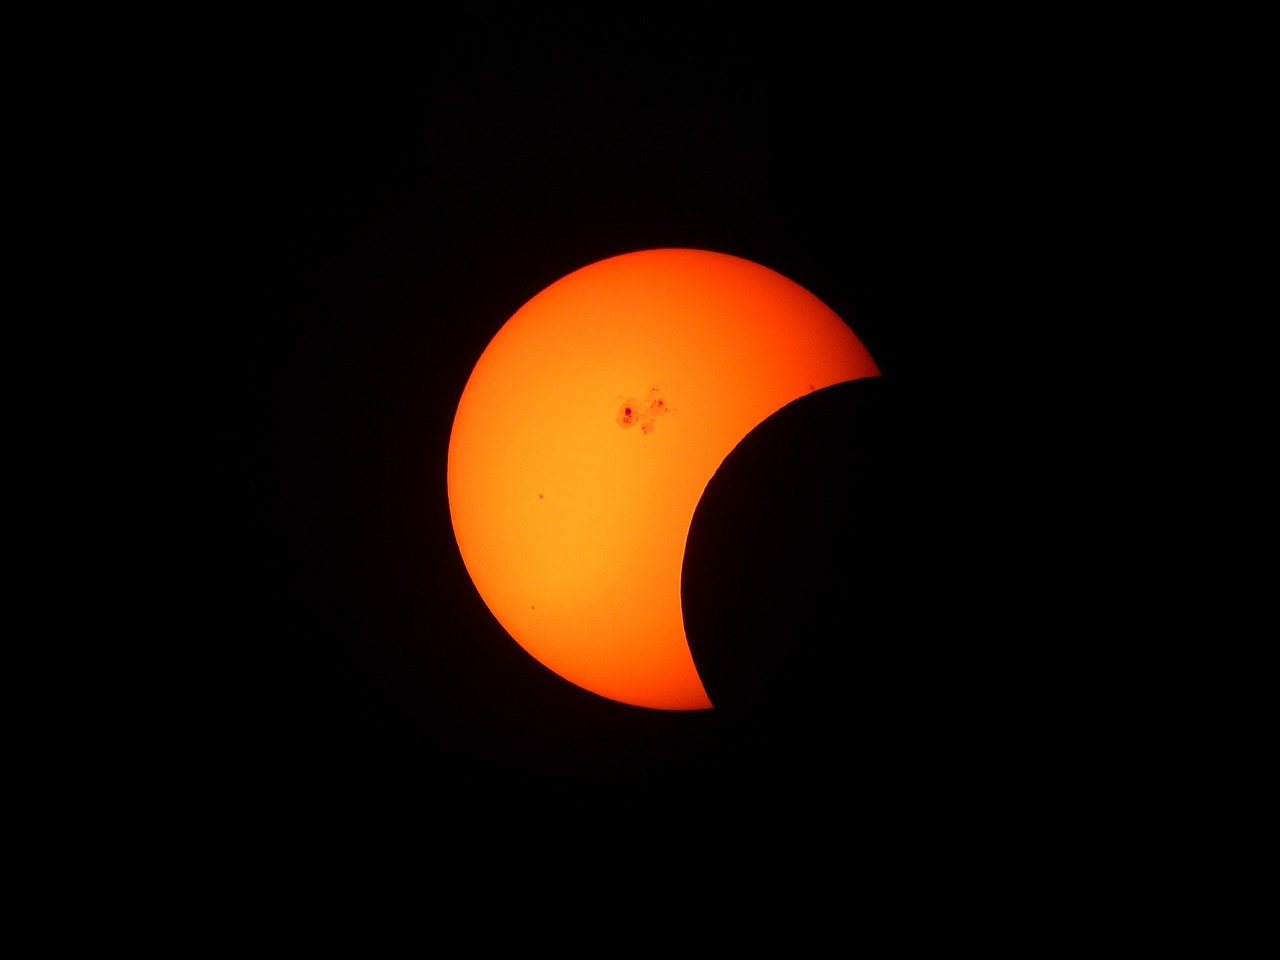 partial-solar-eclipse-1154215_960_720.png